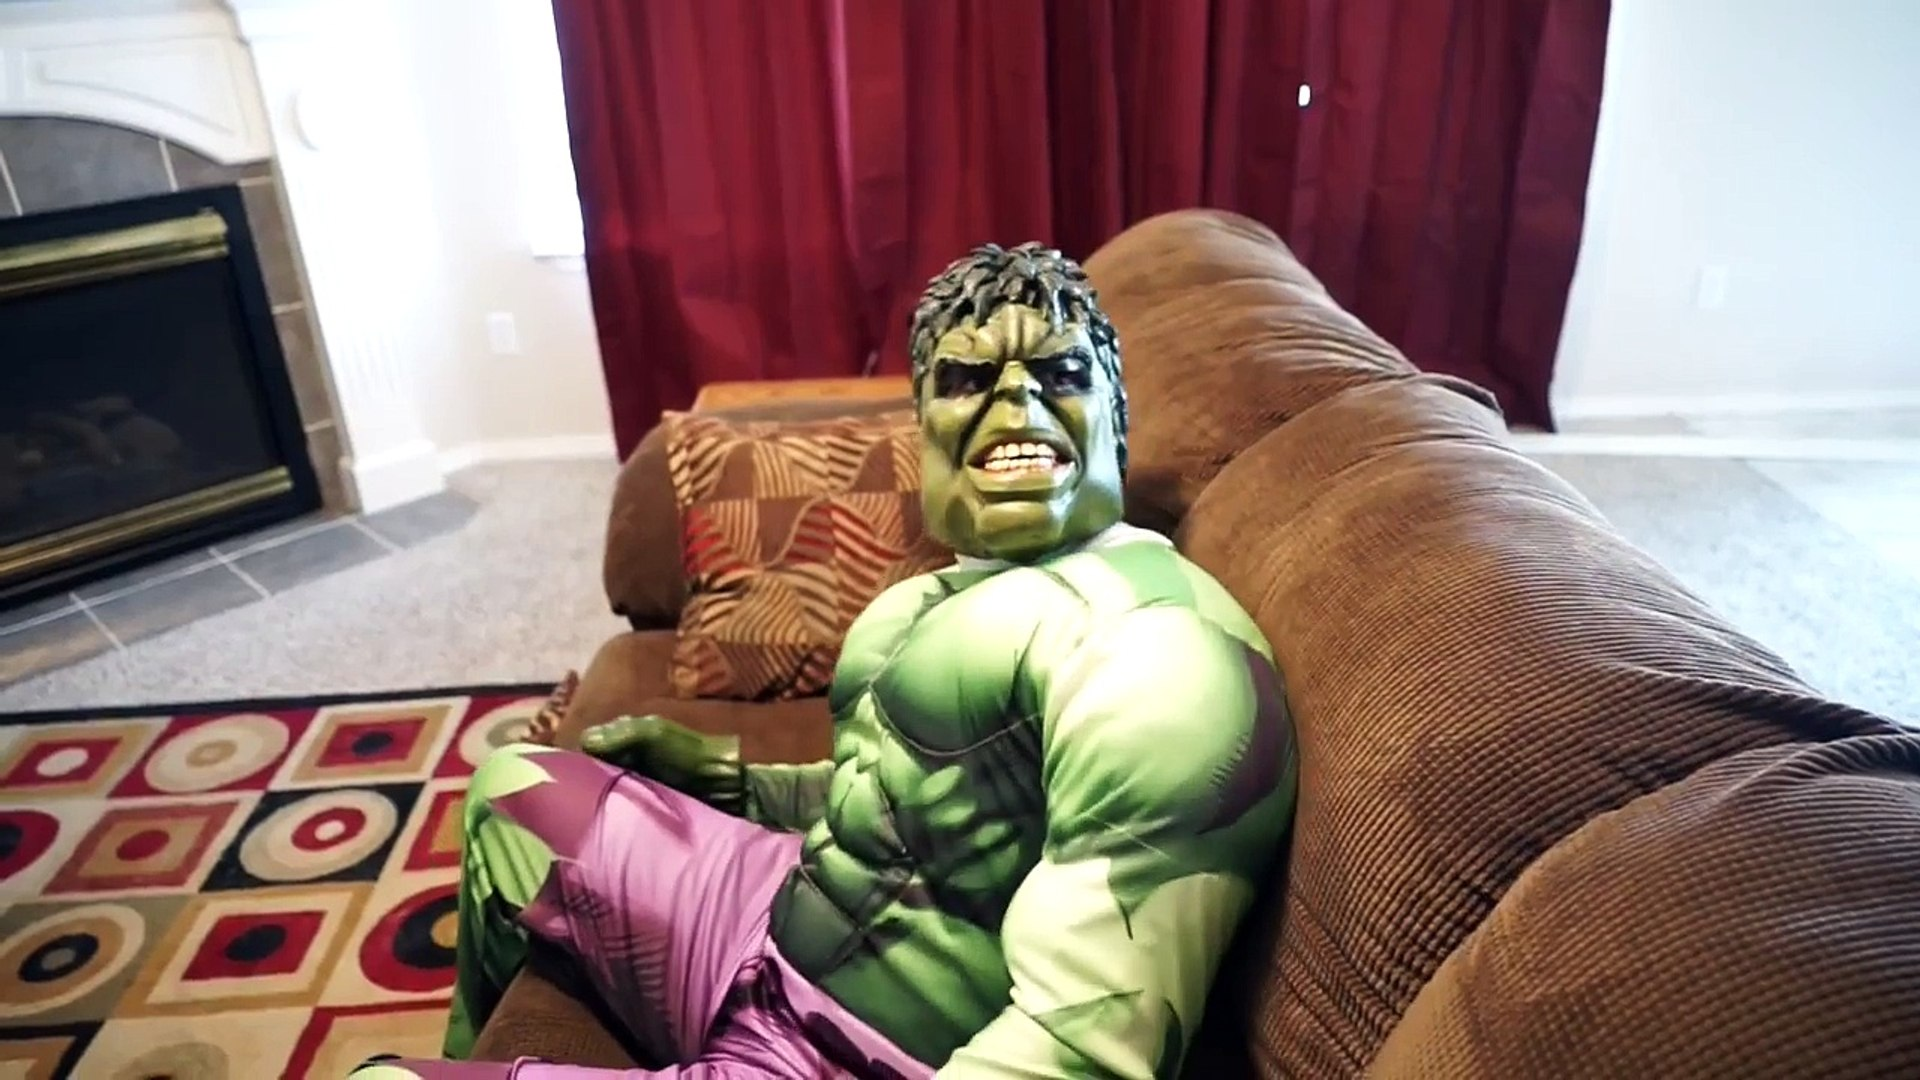 Spiderman T Rex Hulk Vs Joker In Real Life Superhero Movie Video Dailymotion